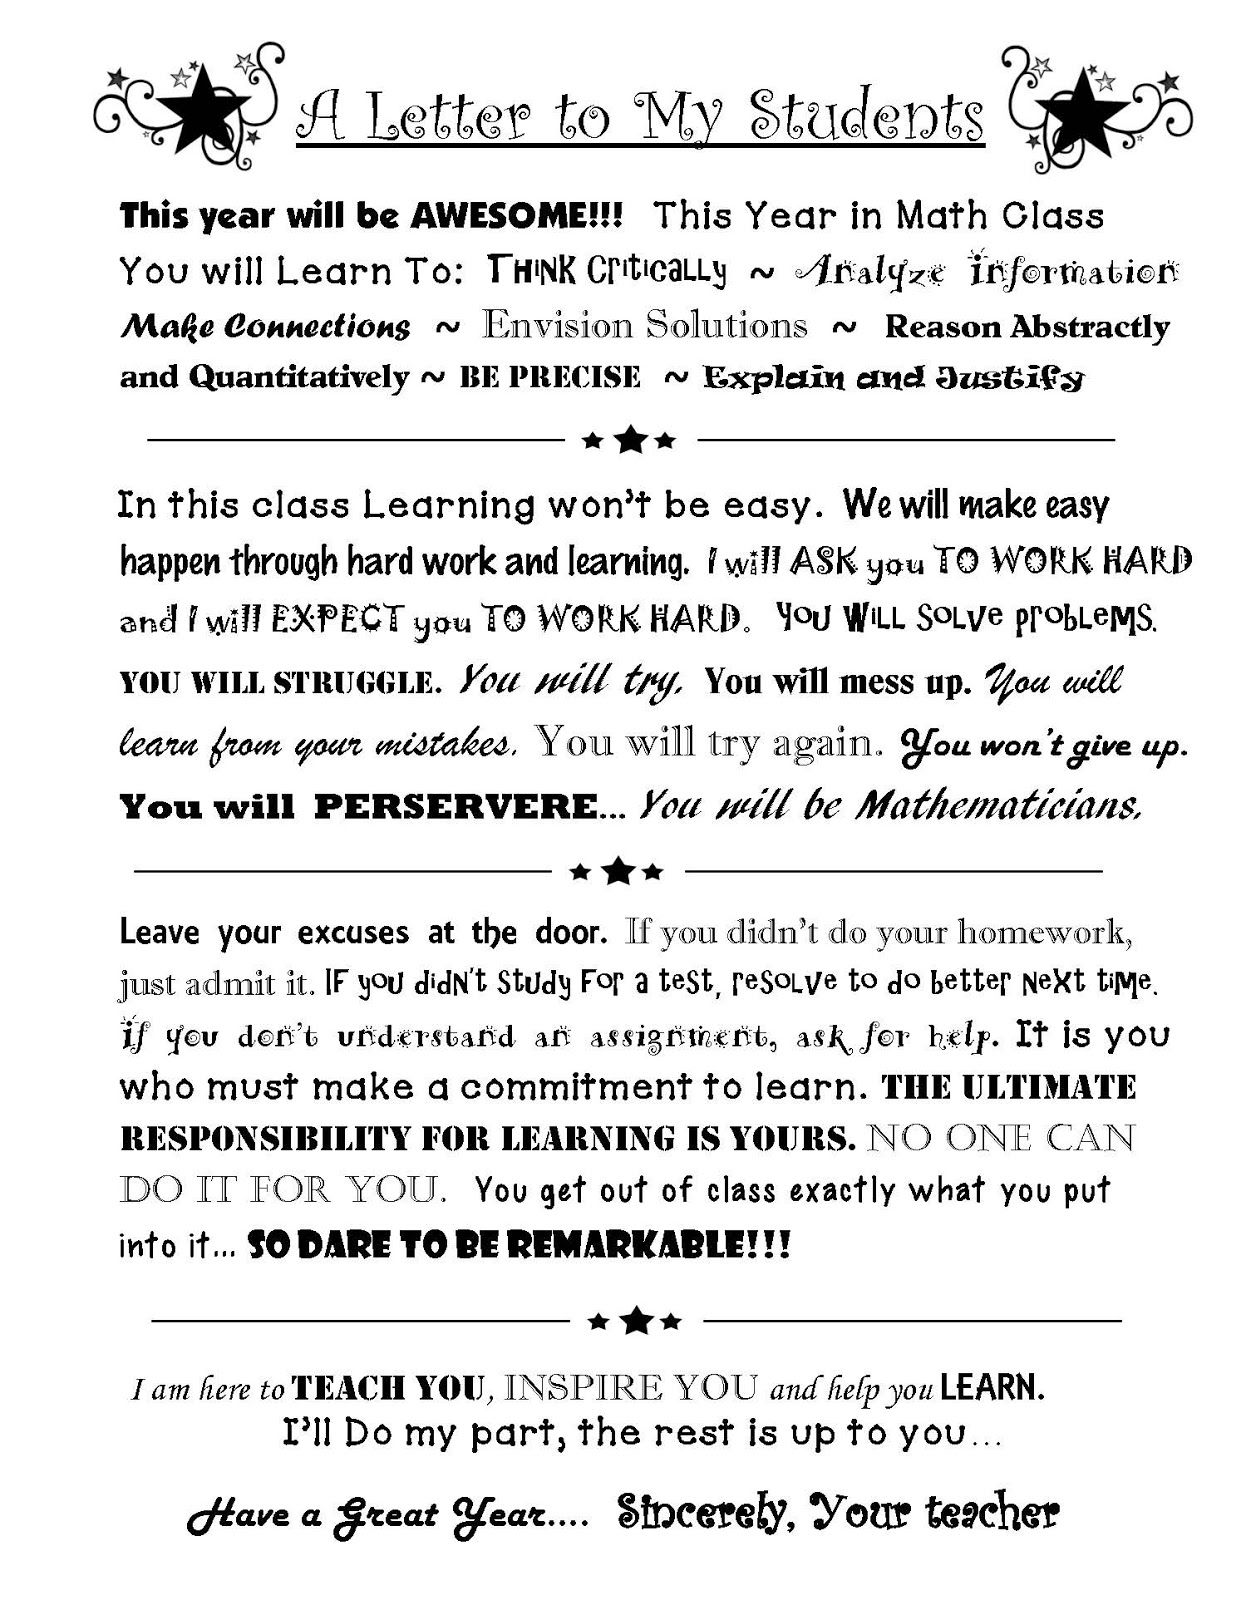 Rockstar Math Teacher A Letter To My Students